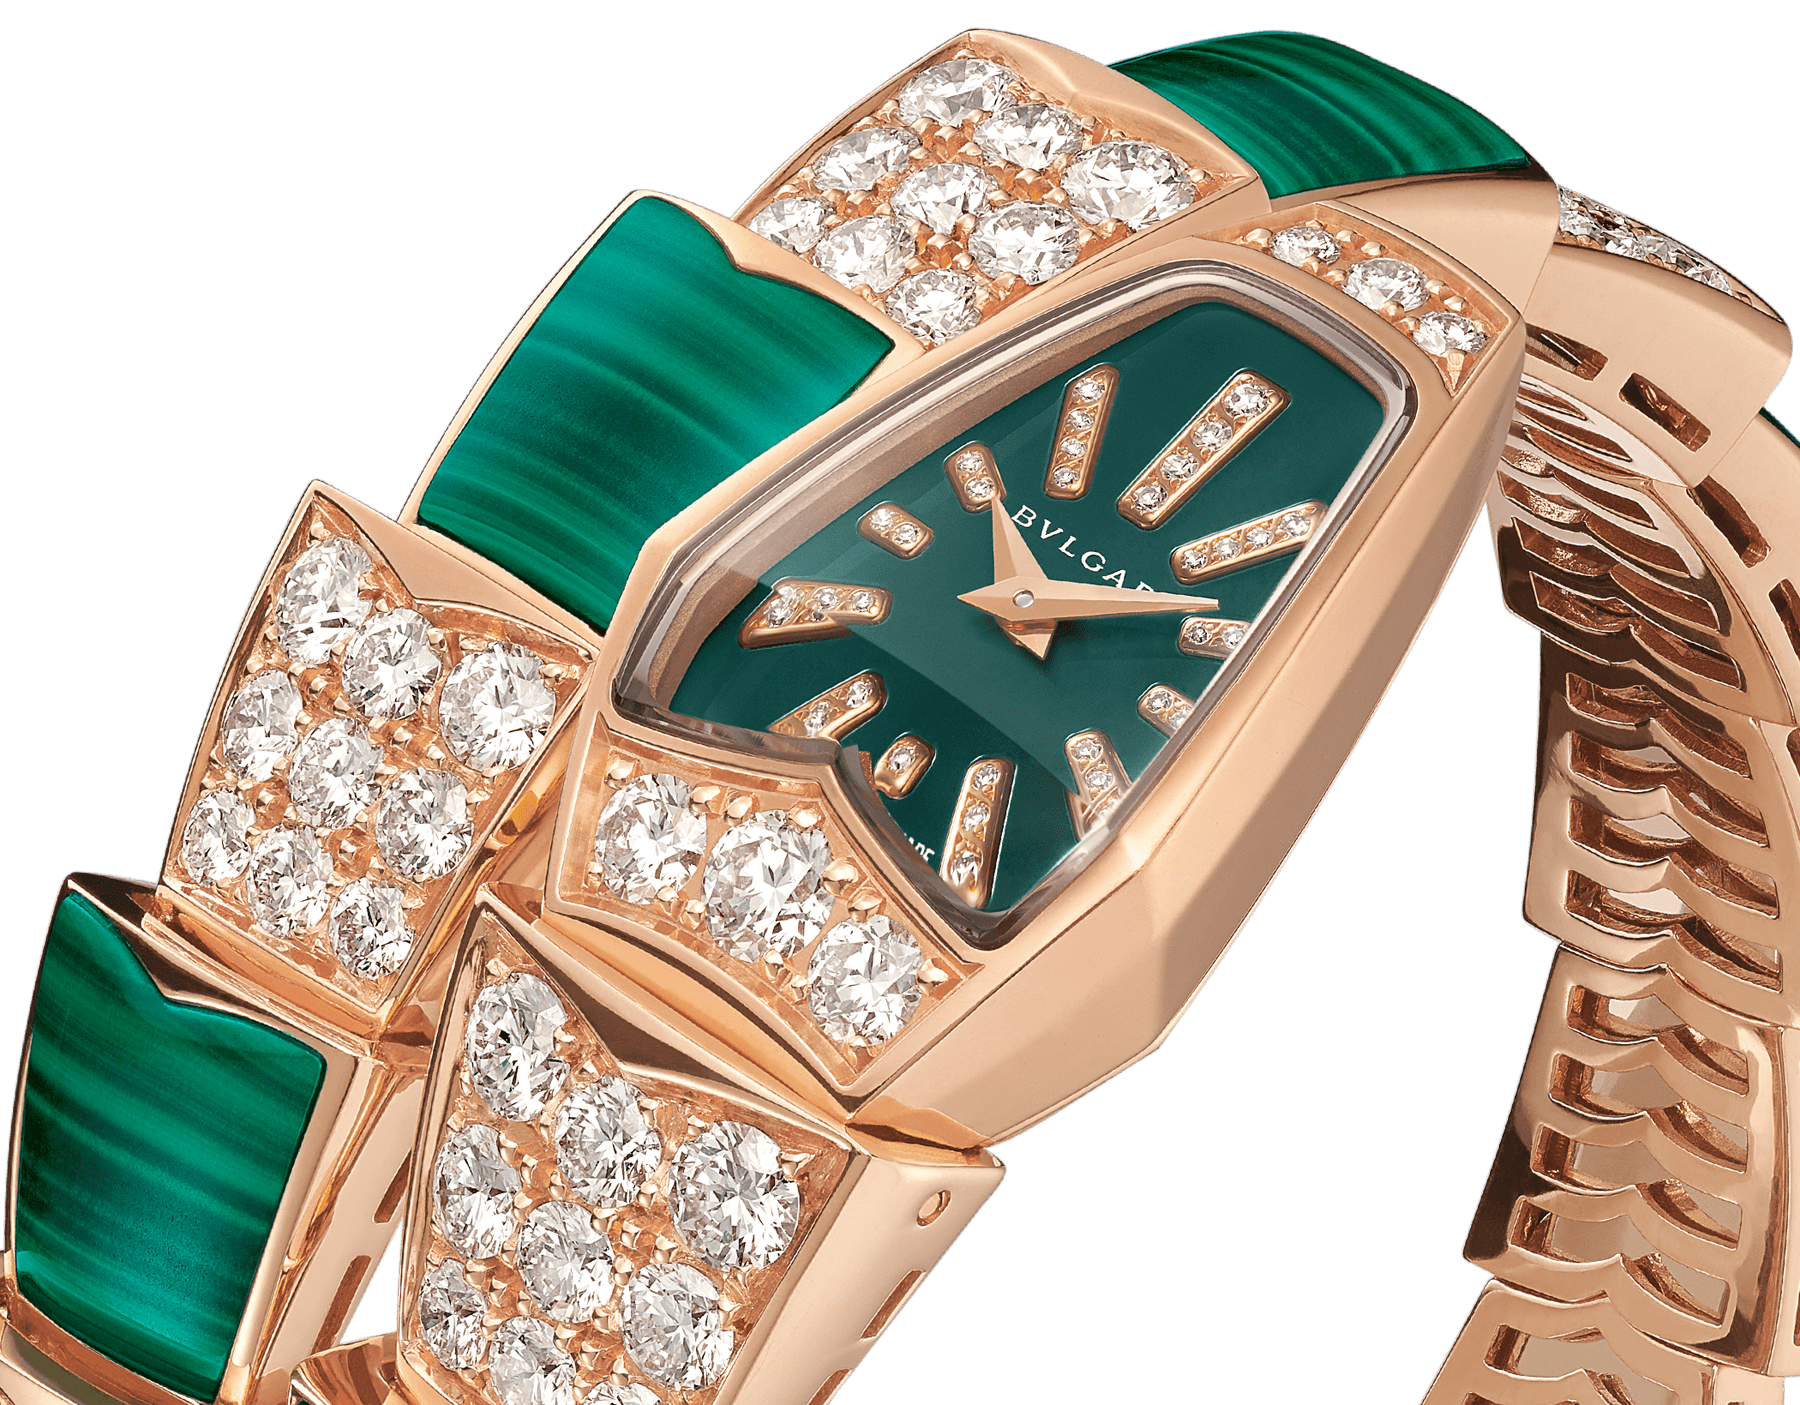 Montre-bijou Serpenti avec boîtier en or rose 18 K serti de diamants taille brillant, cadran laqué vert, index sertis de diamants et bracelet une spirale en or rose 18 K serti de diamants taille brillant et éléments en malachite. 102678 image 2